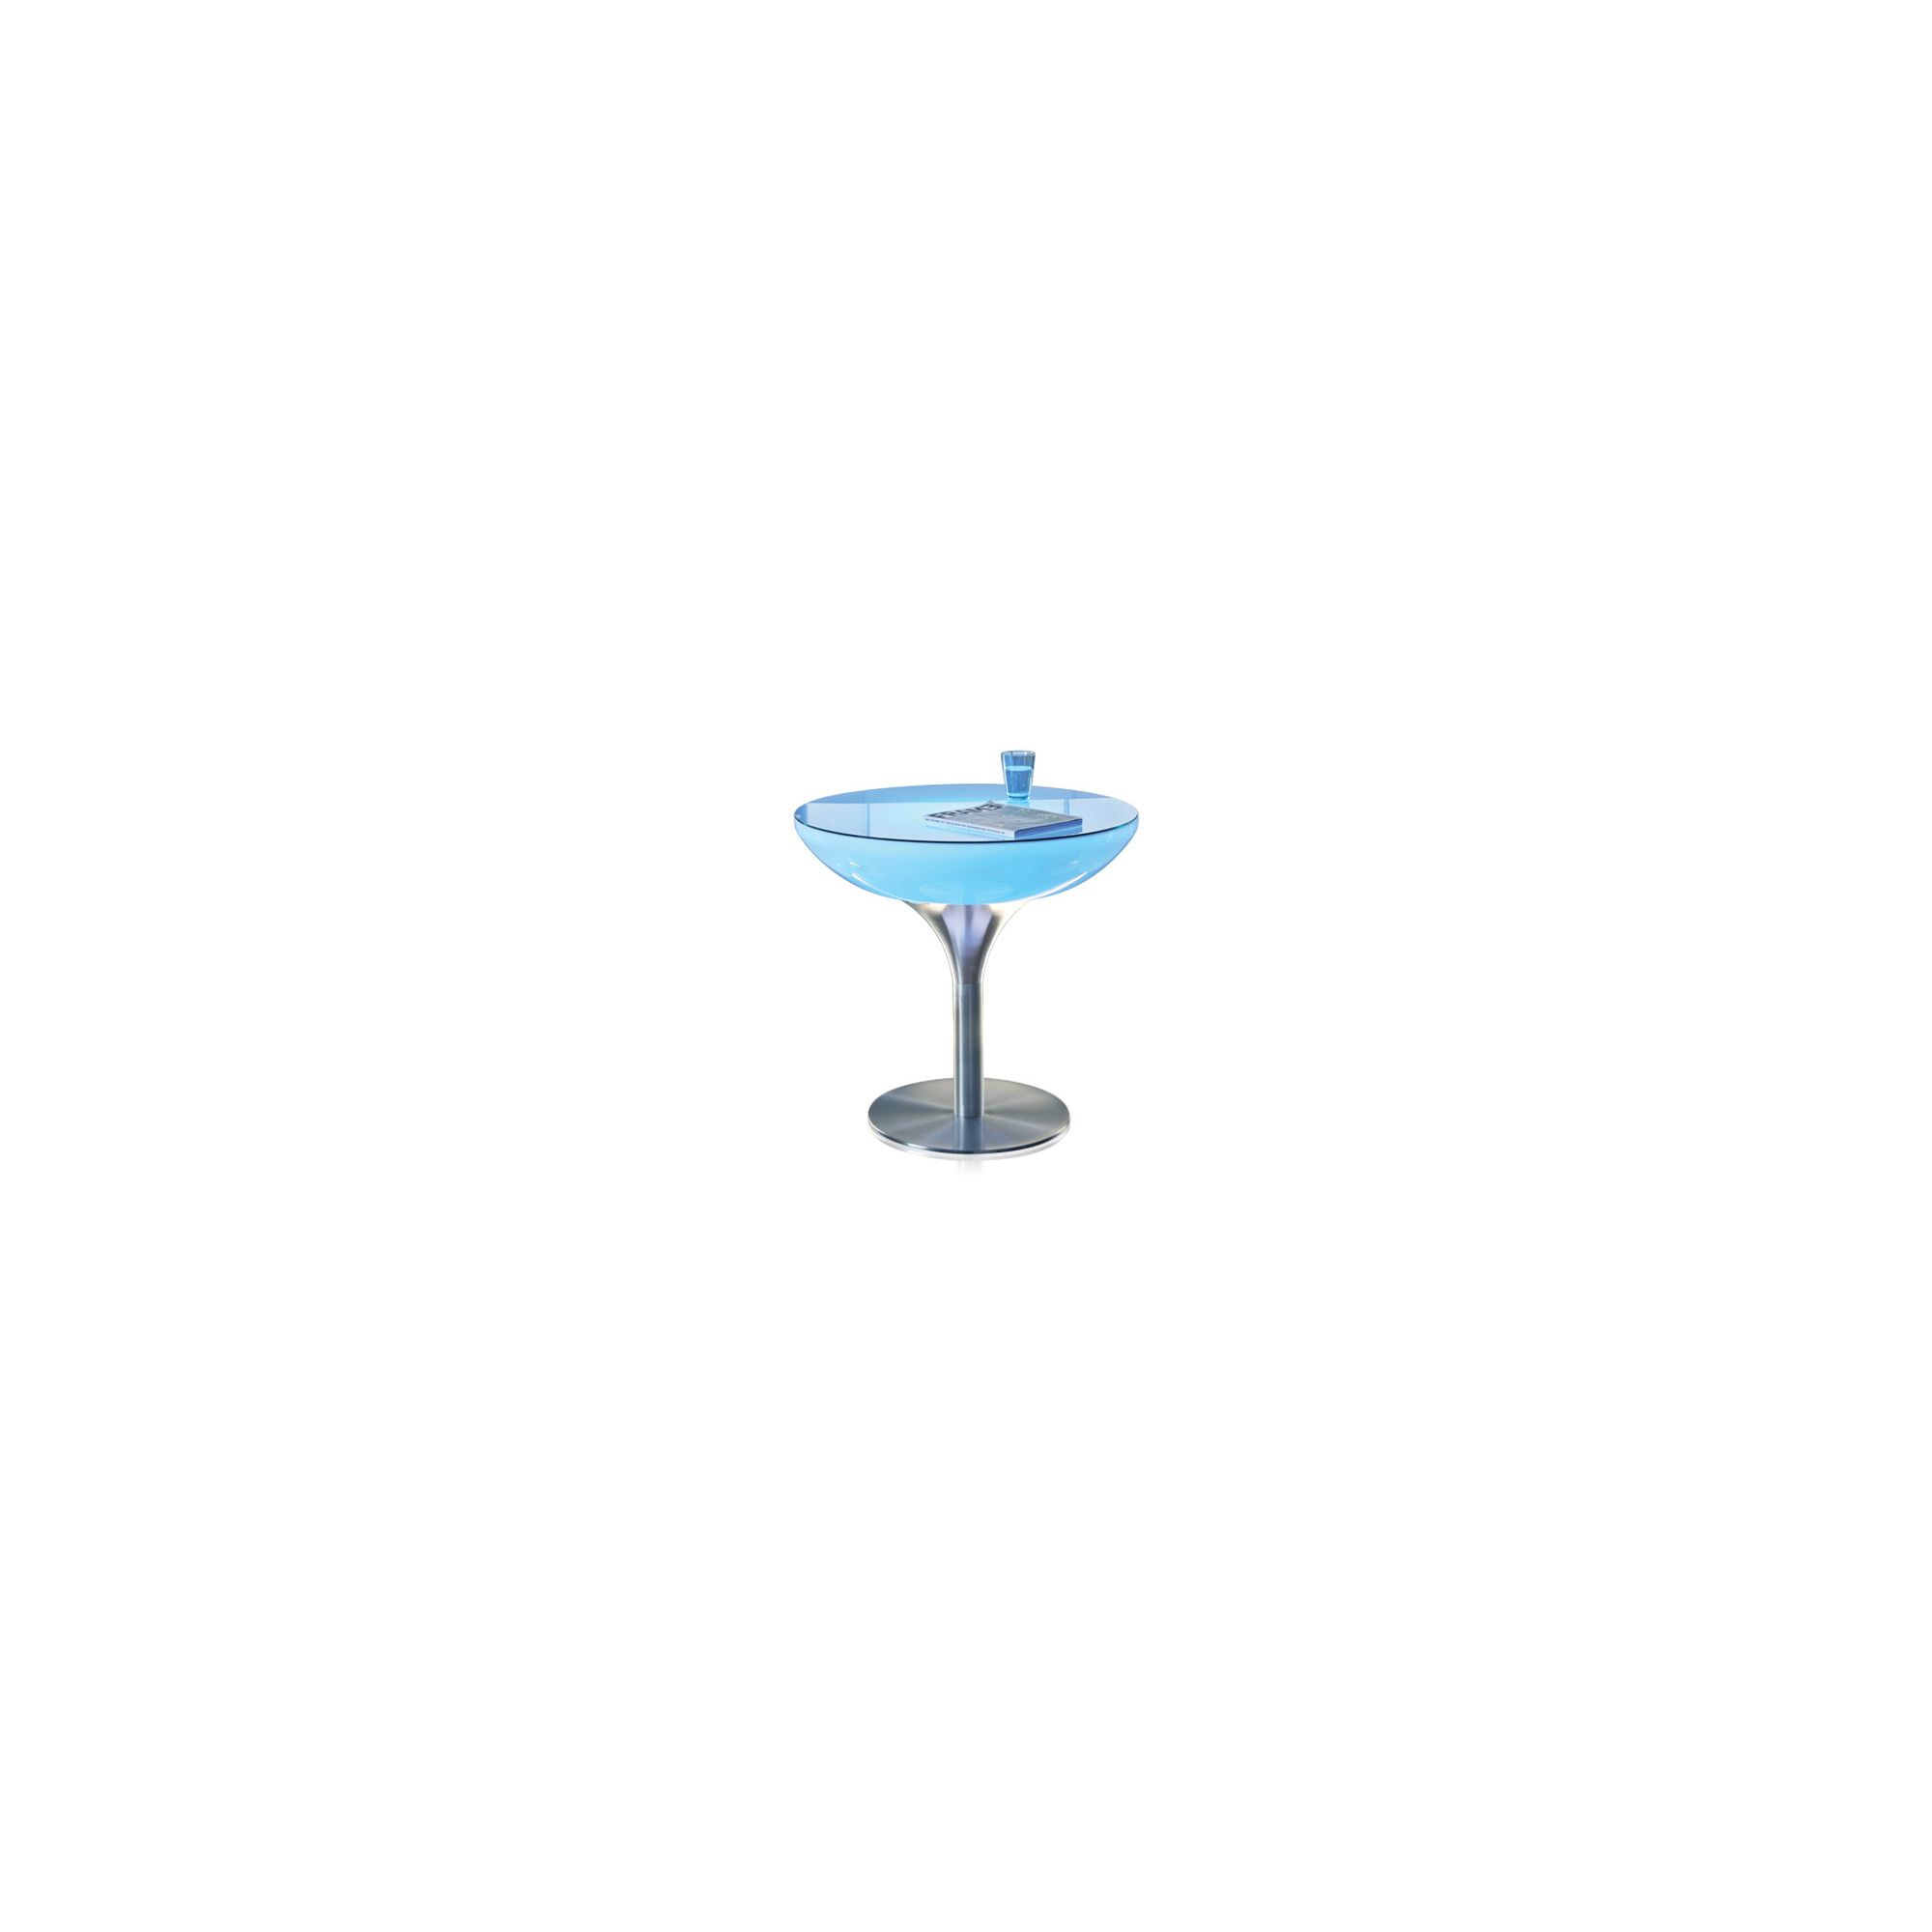 Moree Lounge Pro Table with Glass Top - 75cm at Tesco Direct